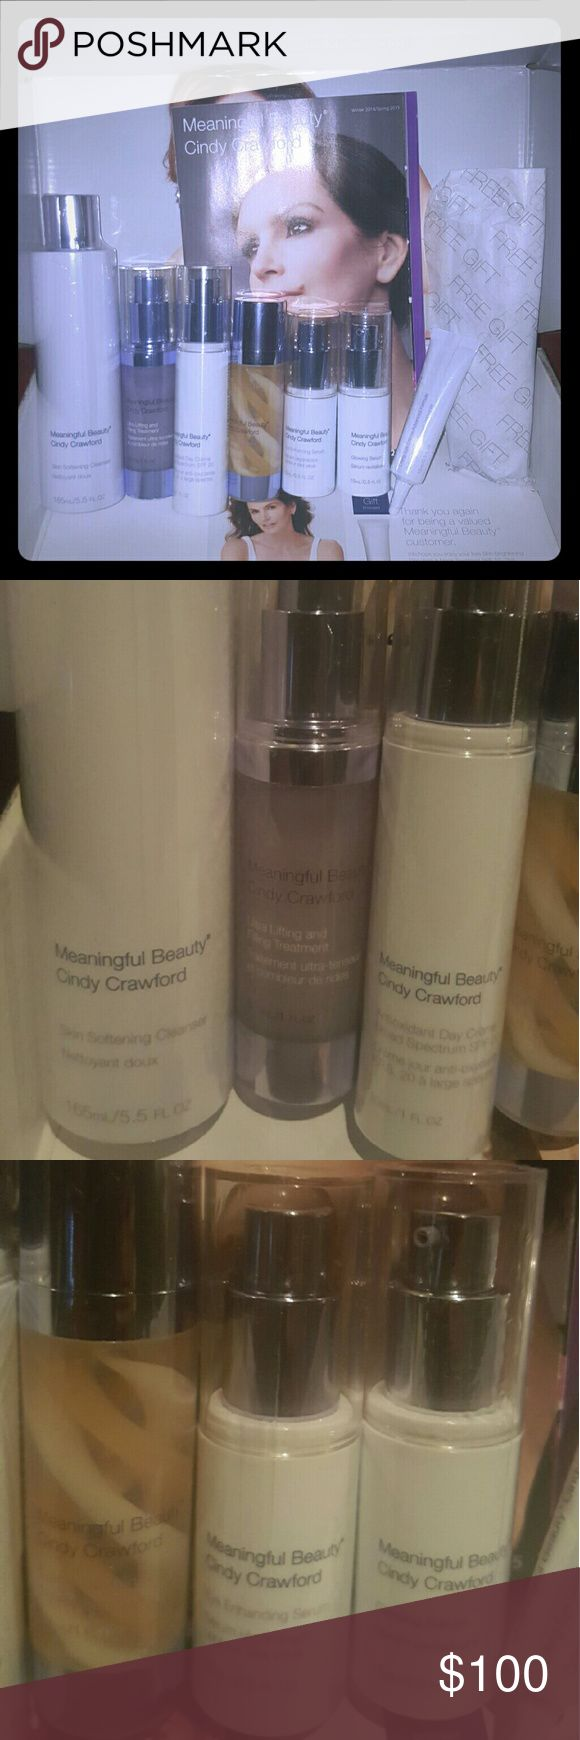 Meaningful Beauty by Cindy Crawford Package includes (1) skin softening cleanser, (1) ultra lifting and filling treatment, (1) antioxidant day cream, (1) creme de serum (1) eye enhancing serum, (1) eye enhancing serum, (1) glowing serum, (1) lifting eye creme advanced formula, and (1) free gift. Also includes a brochure and ingredient guide. Cindy Crawford Other